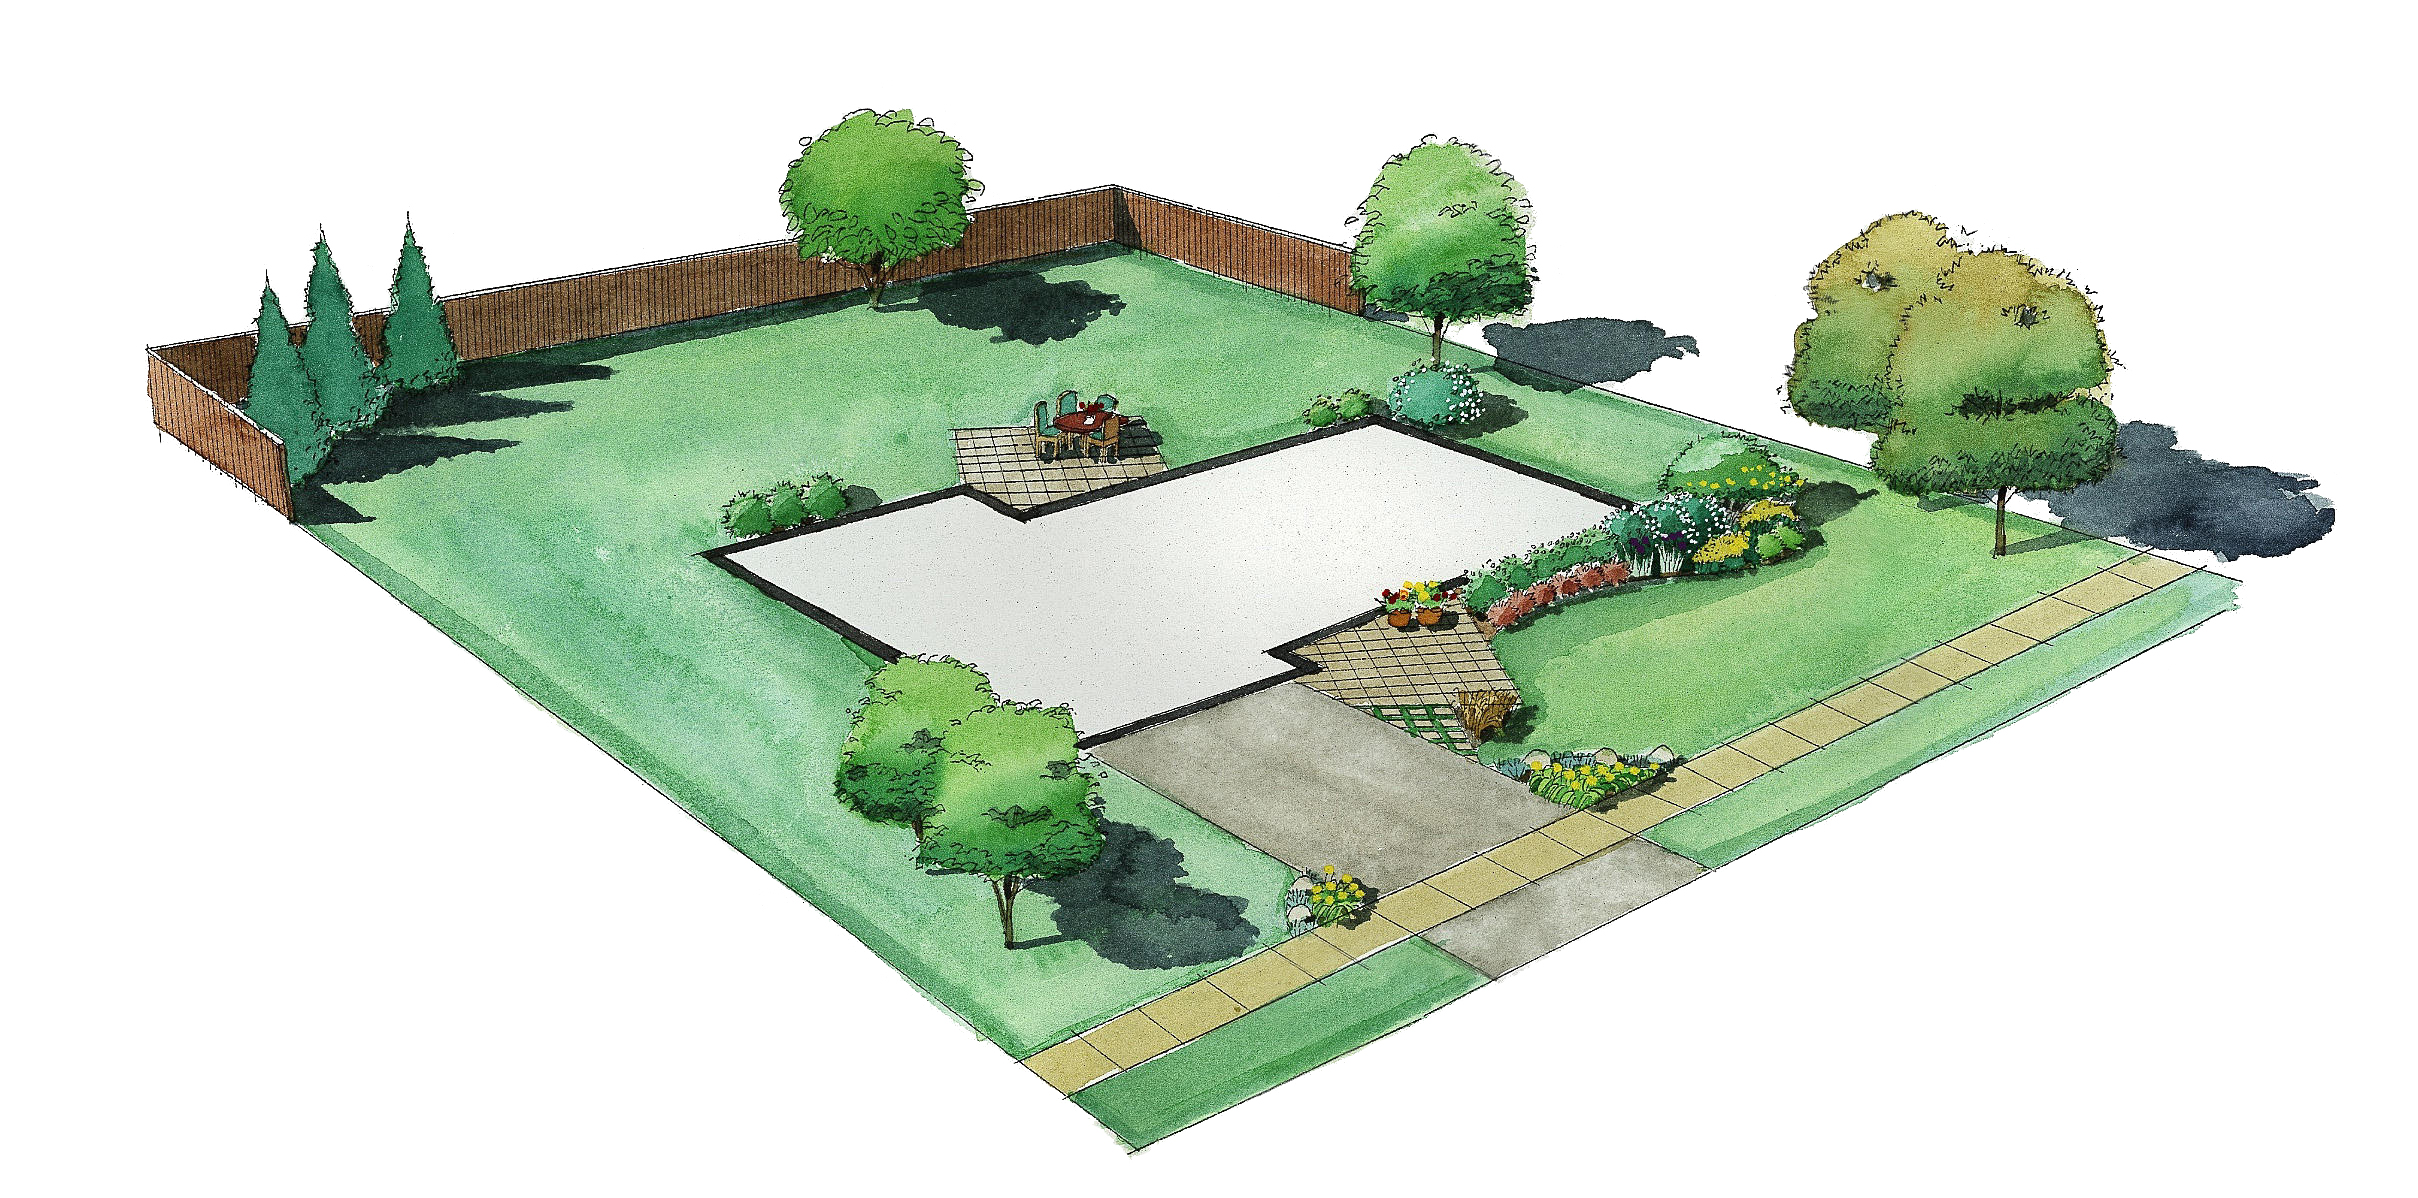 Second Year Plan With Patio With Furniture And Flower Beds At Front Of House